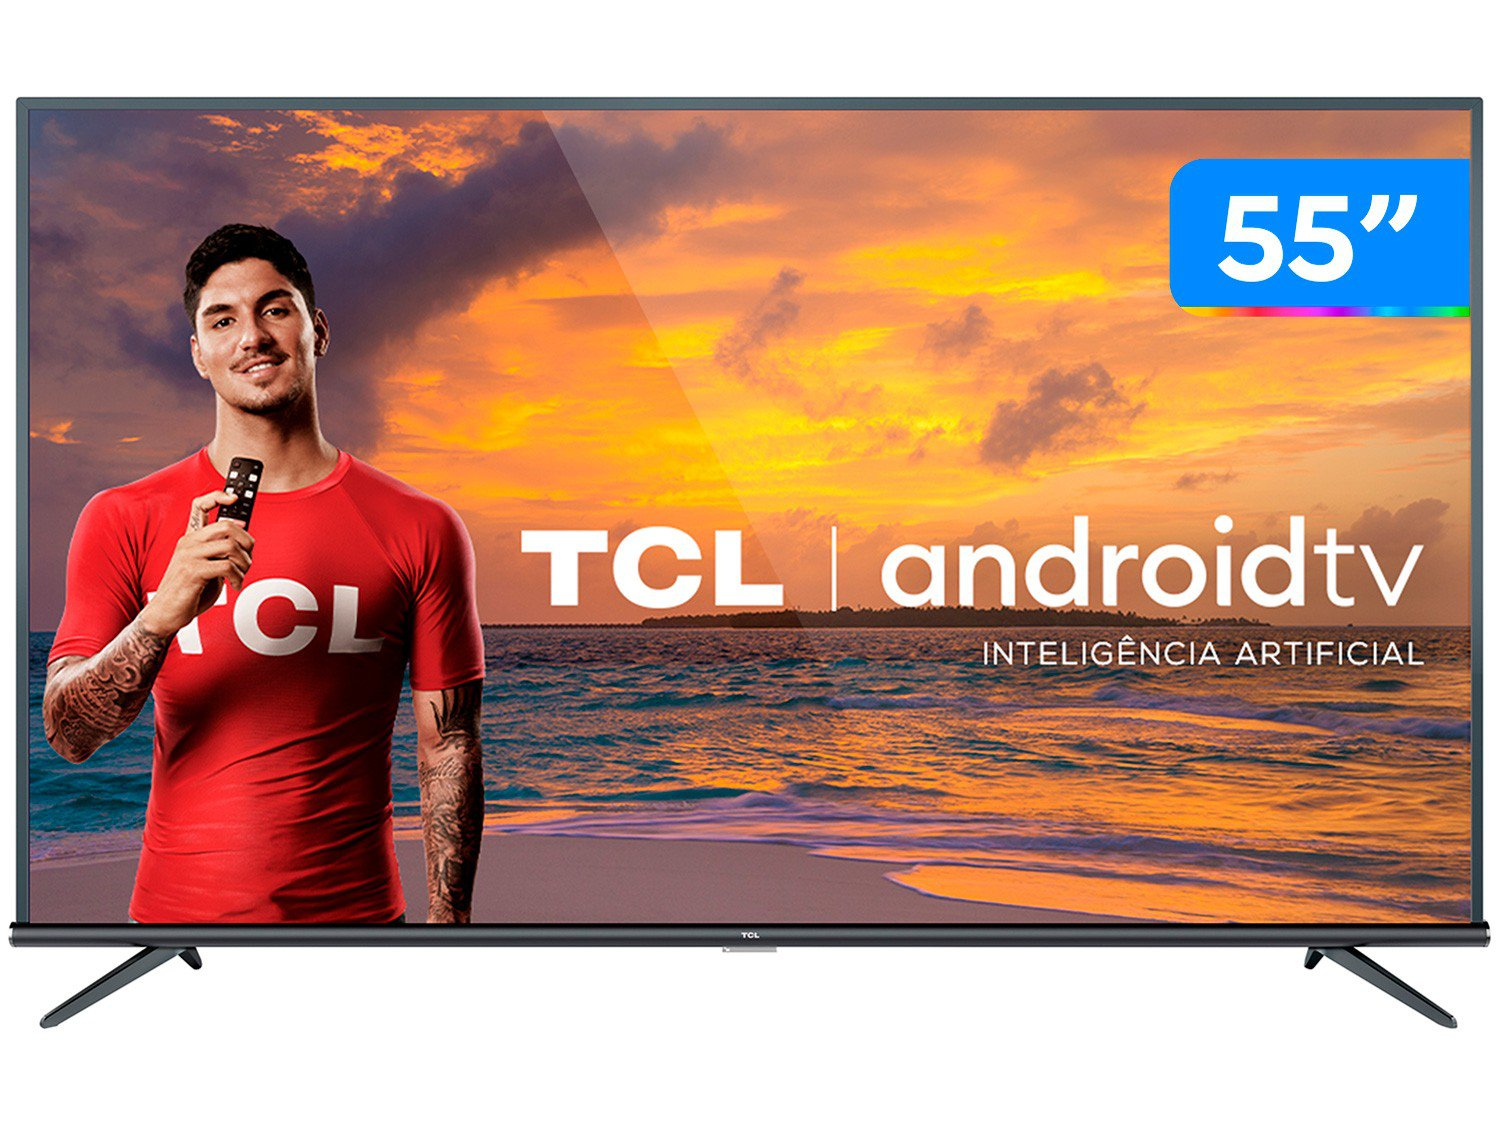 "Smart TV LED 55"" 4K TCL 55P8M com Android TV, Controle Remoto Comando de Voz, HDR, Micro Dimming, Google Assistant, Bluetooth, HDMI e USB - 3"